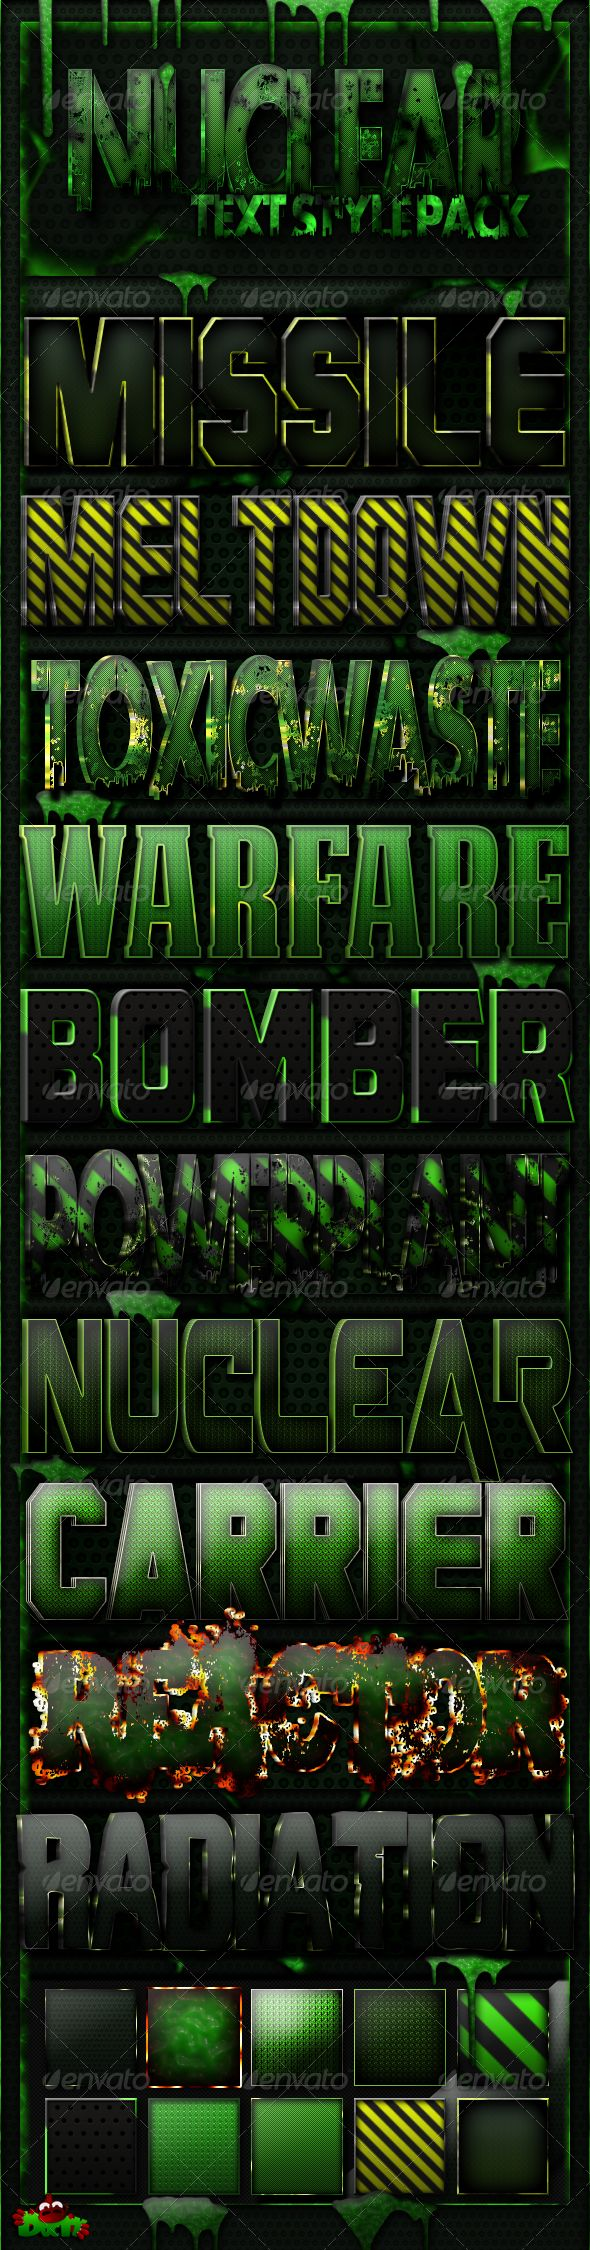 10 Nuclear Text Styles — Layered PSD #green metal #missle • Available here → https://graphicriver.net/item/10-nuclear-text-styles/6508749?ref=pxcr